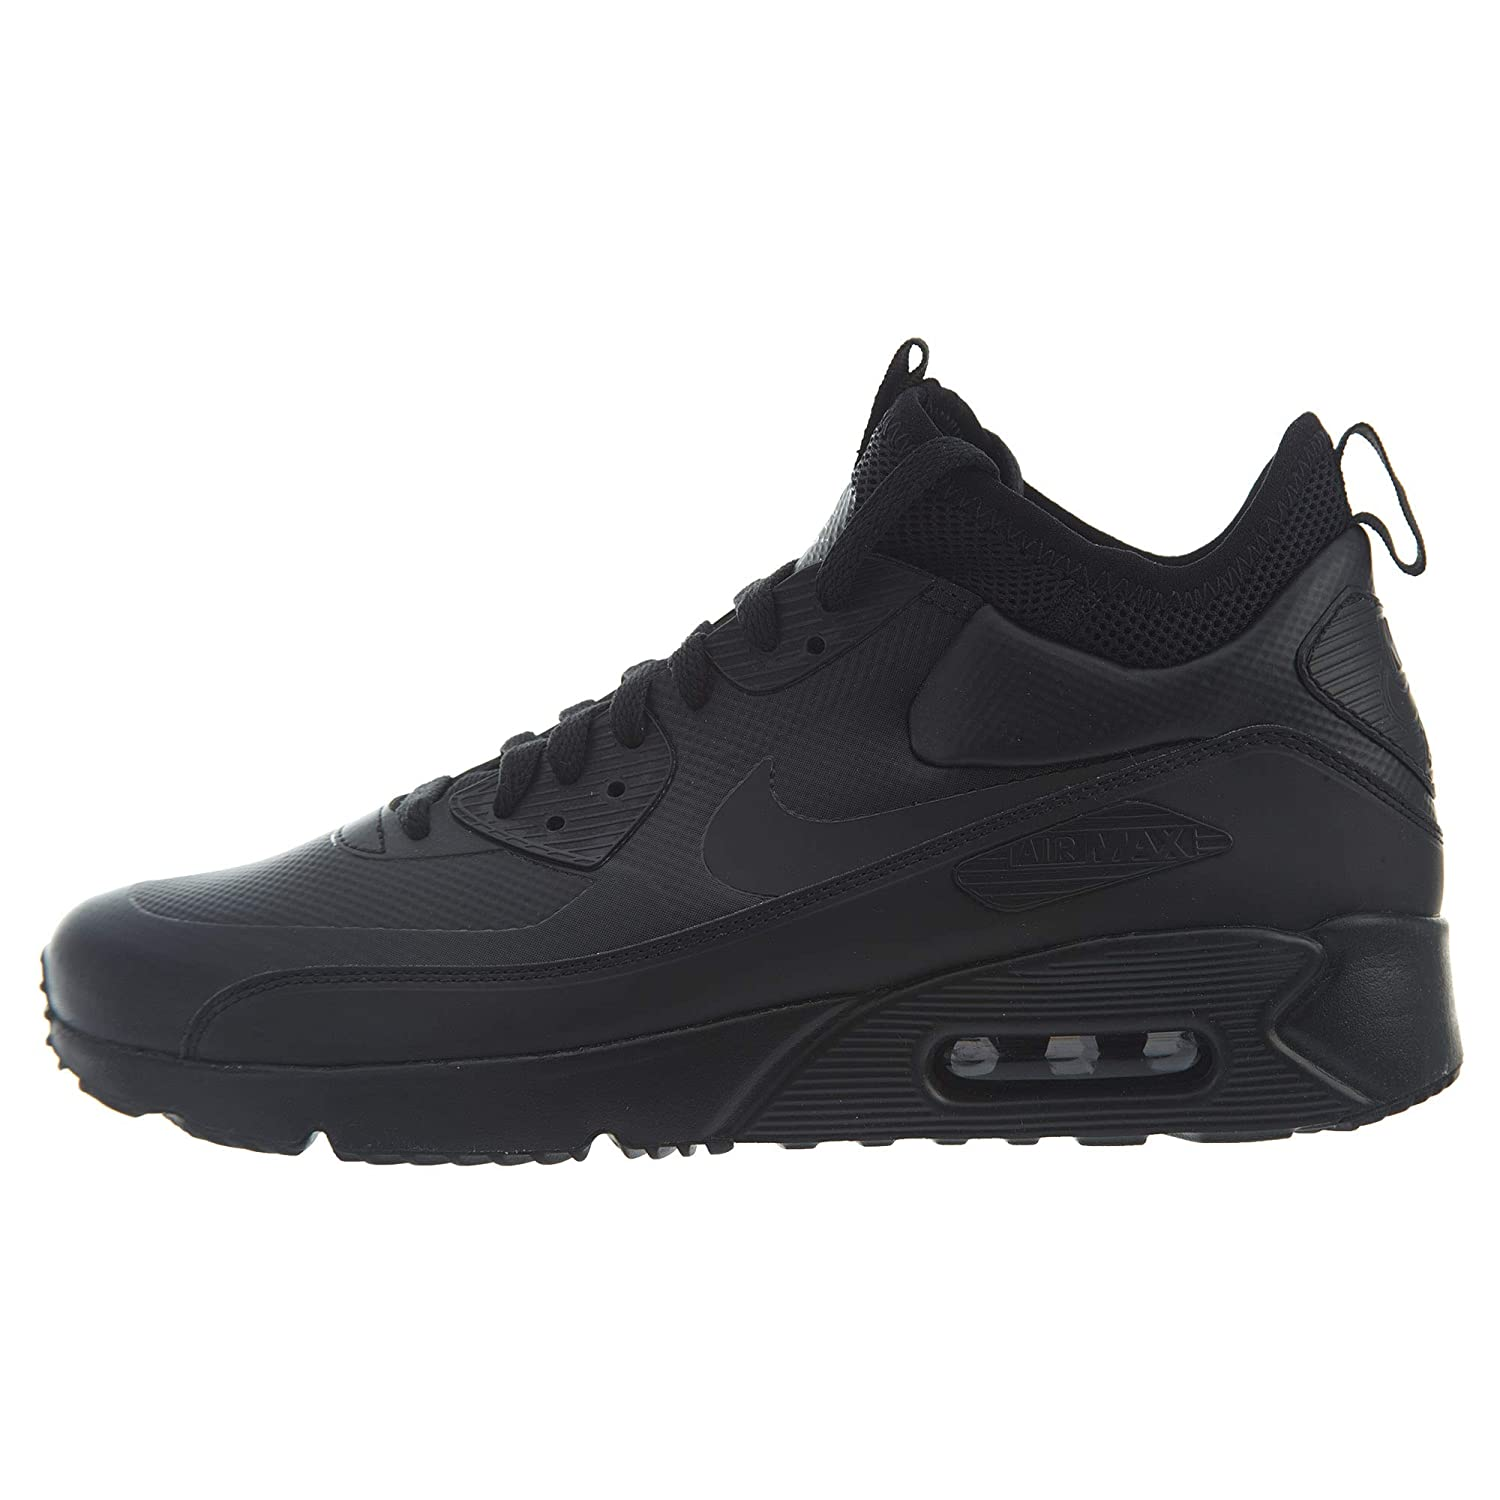 TALLA 41 EU. ZAPATILLA NIKE - AIR MAX 90 ULTRA MID WINTER